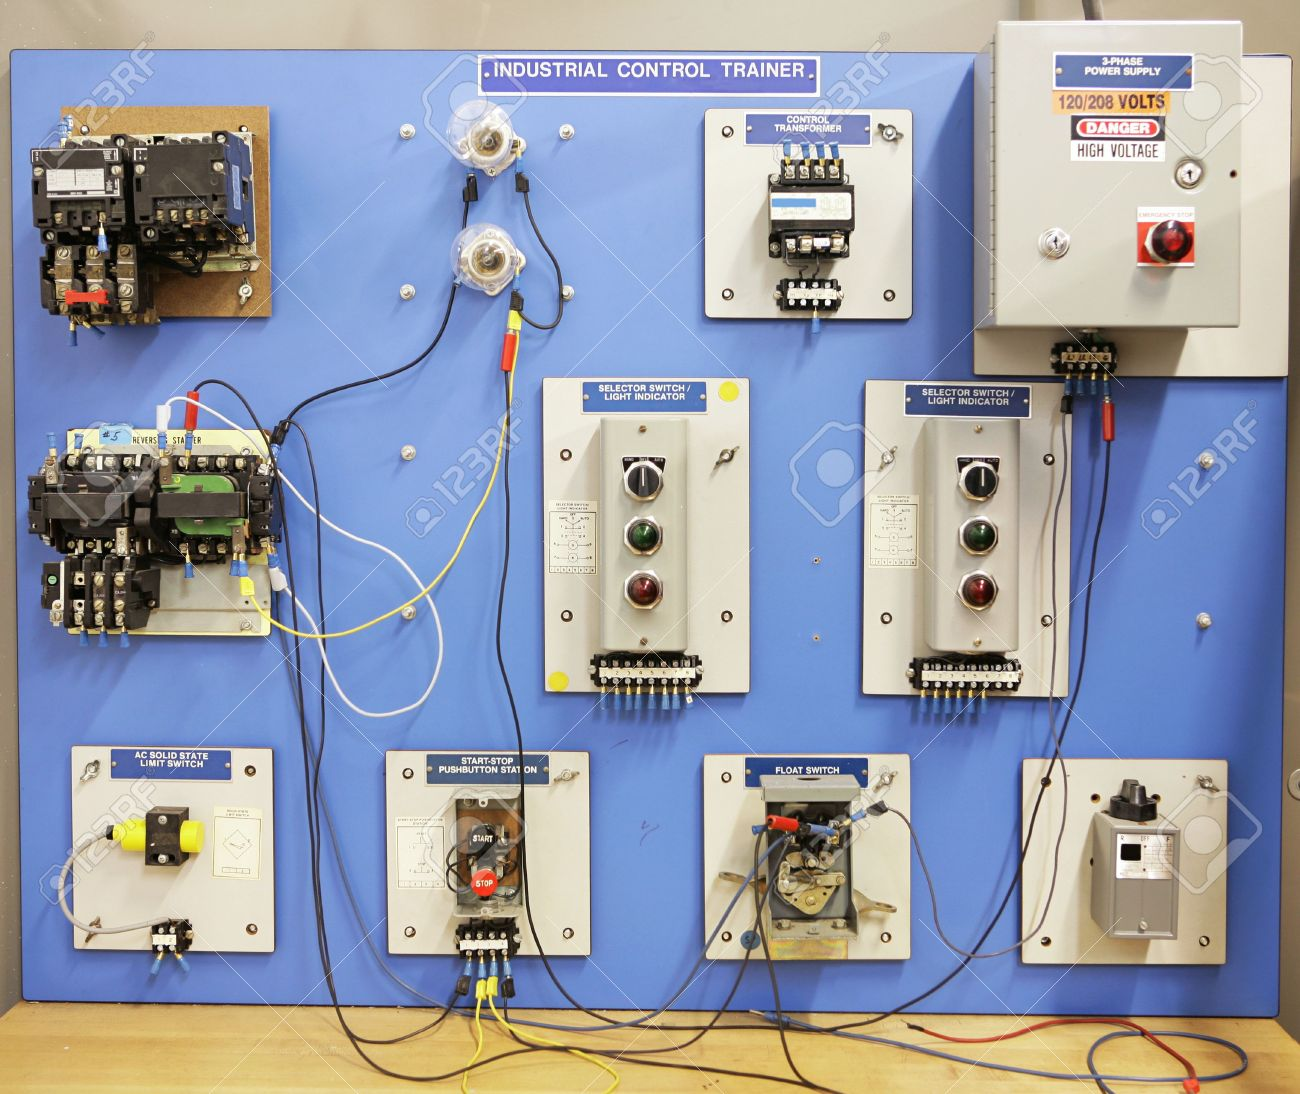 Basic Electrical Design Of A Plc Panel Wiring Diagrams: Motor Panel Board Wiring Diagram